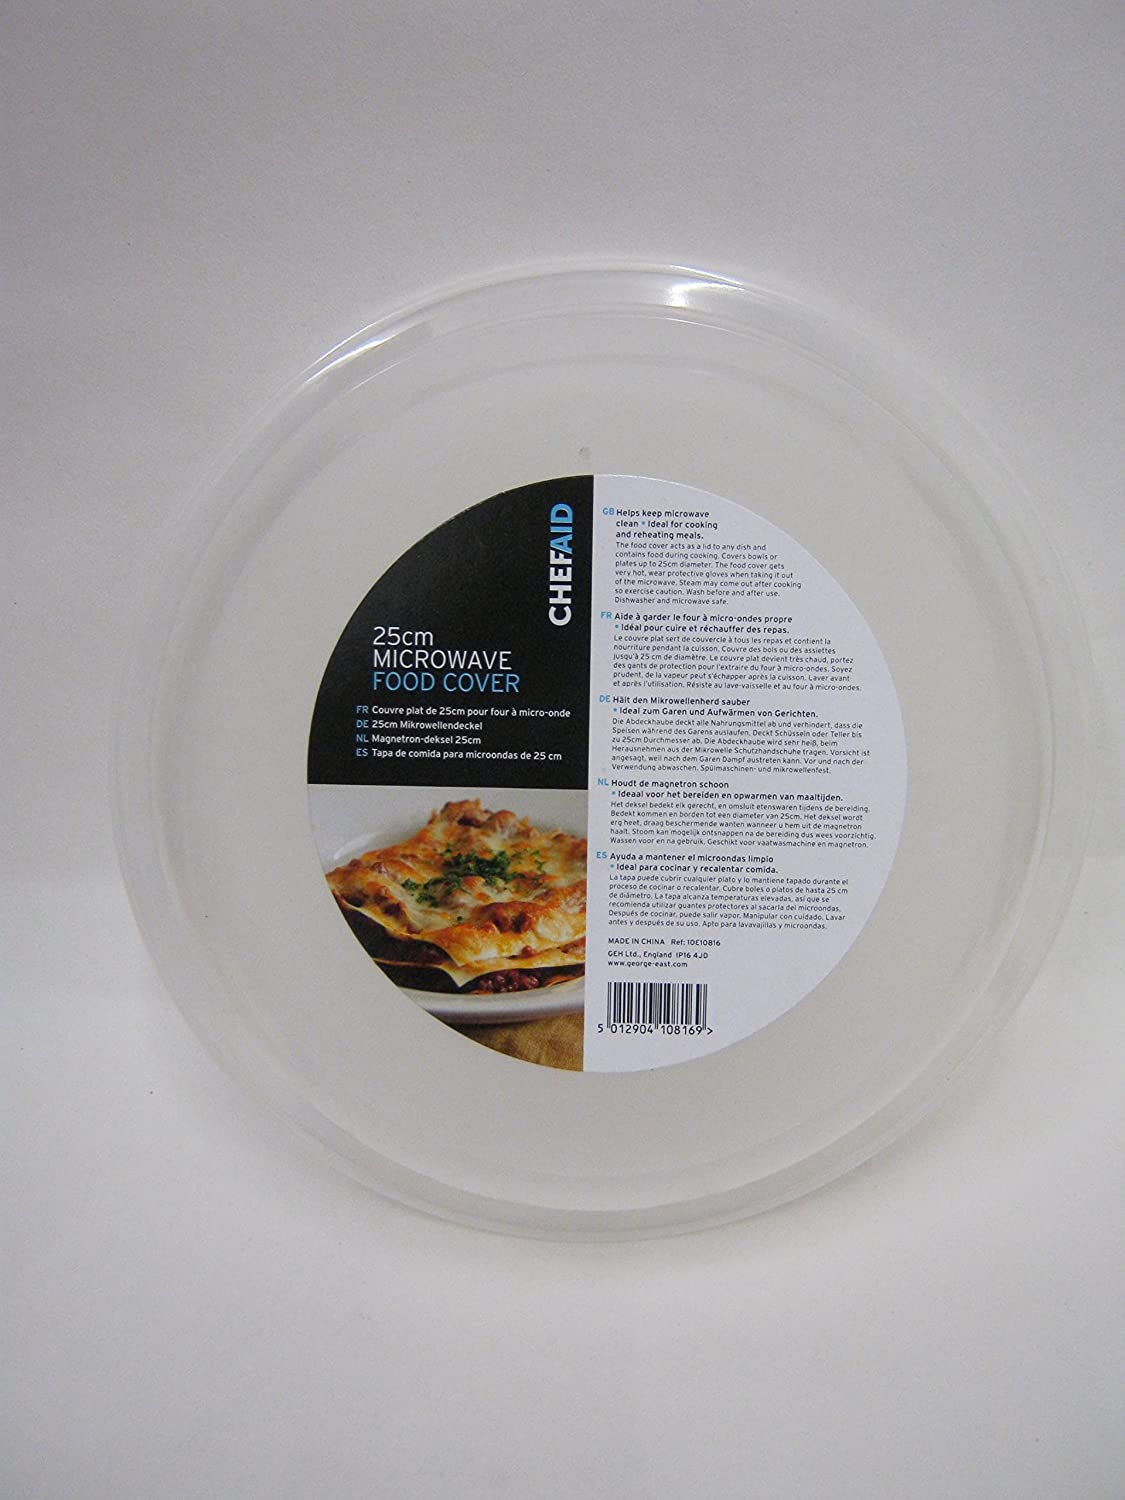 Chef Aid 25cm Microwave Food Cover George East Housewares 10E10816